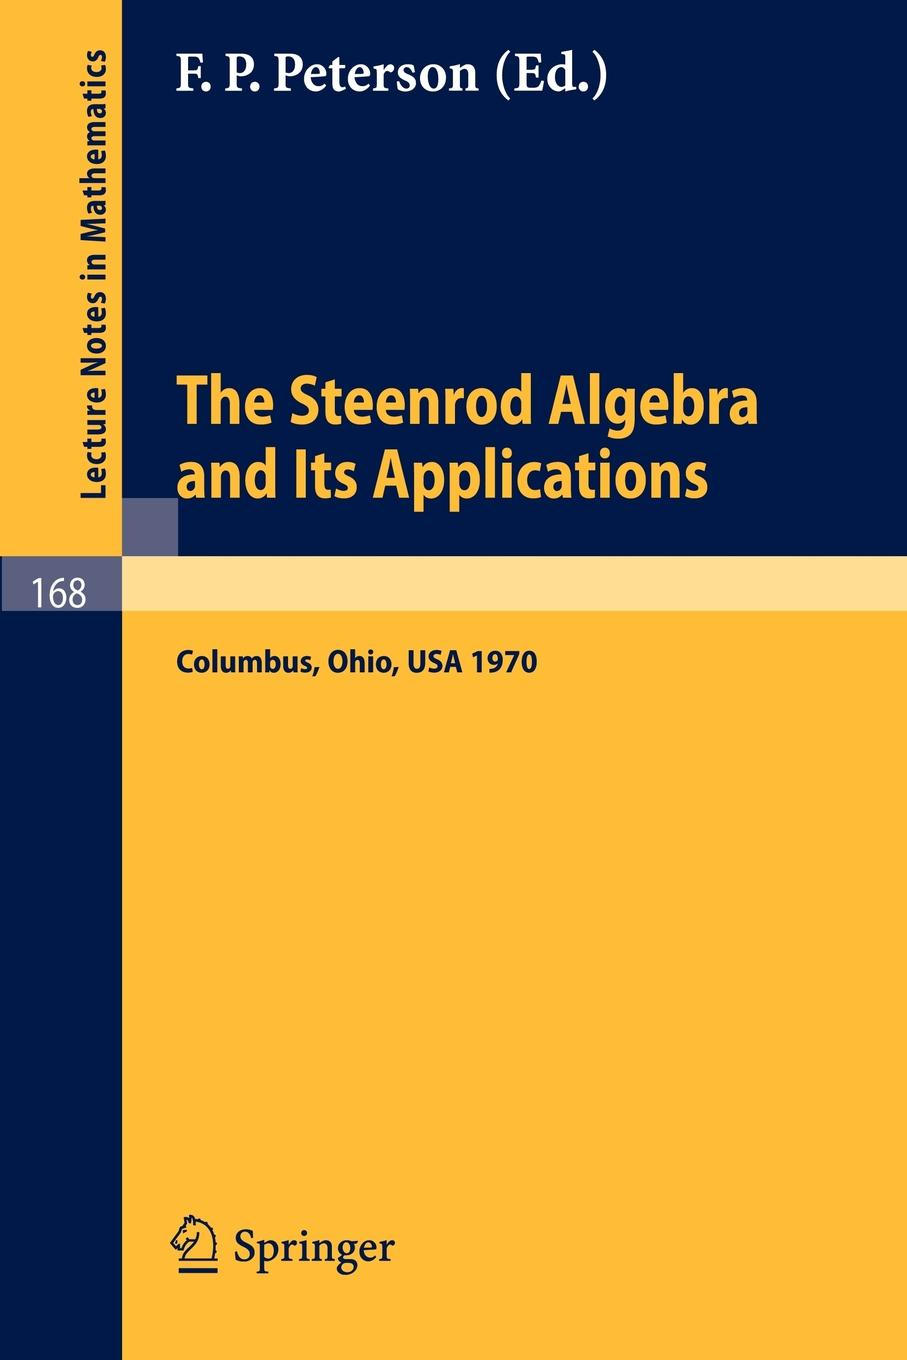 лучшая цена The Steenrod Algebra and Its Applications. A Conference to Celebrate N. E. Steenrod's Sixtieth Birthday. Proceedings of the Conference held at the Battelle Memorial Institute, Columbus, Ohio, March 30th-April 4th, 1970